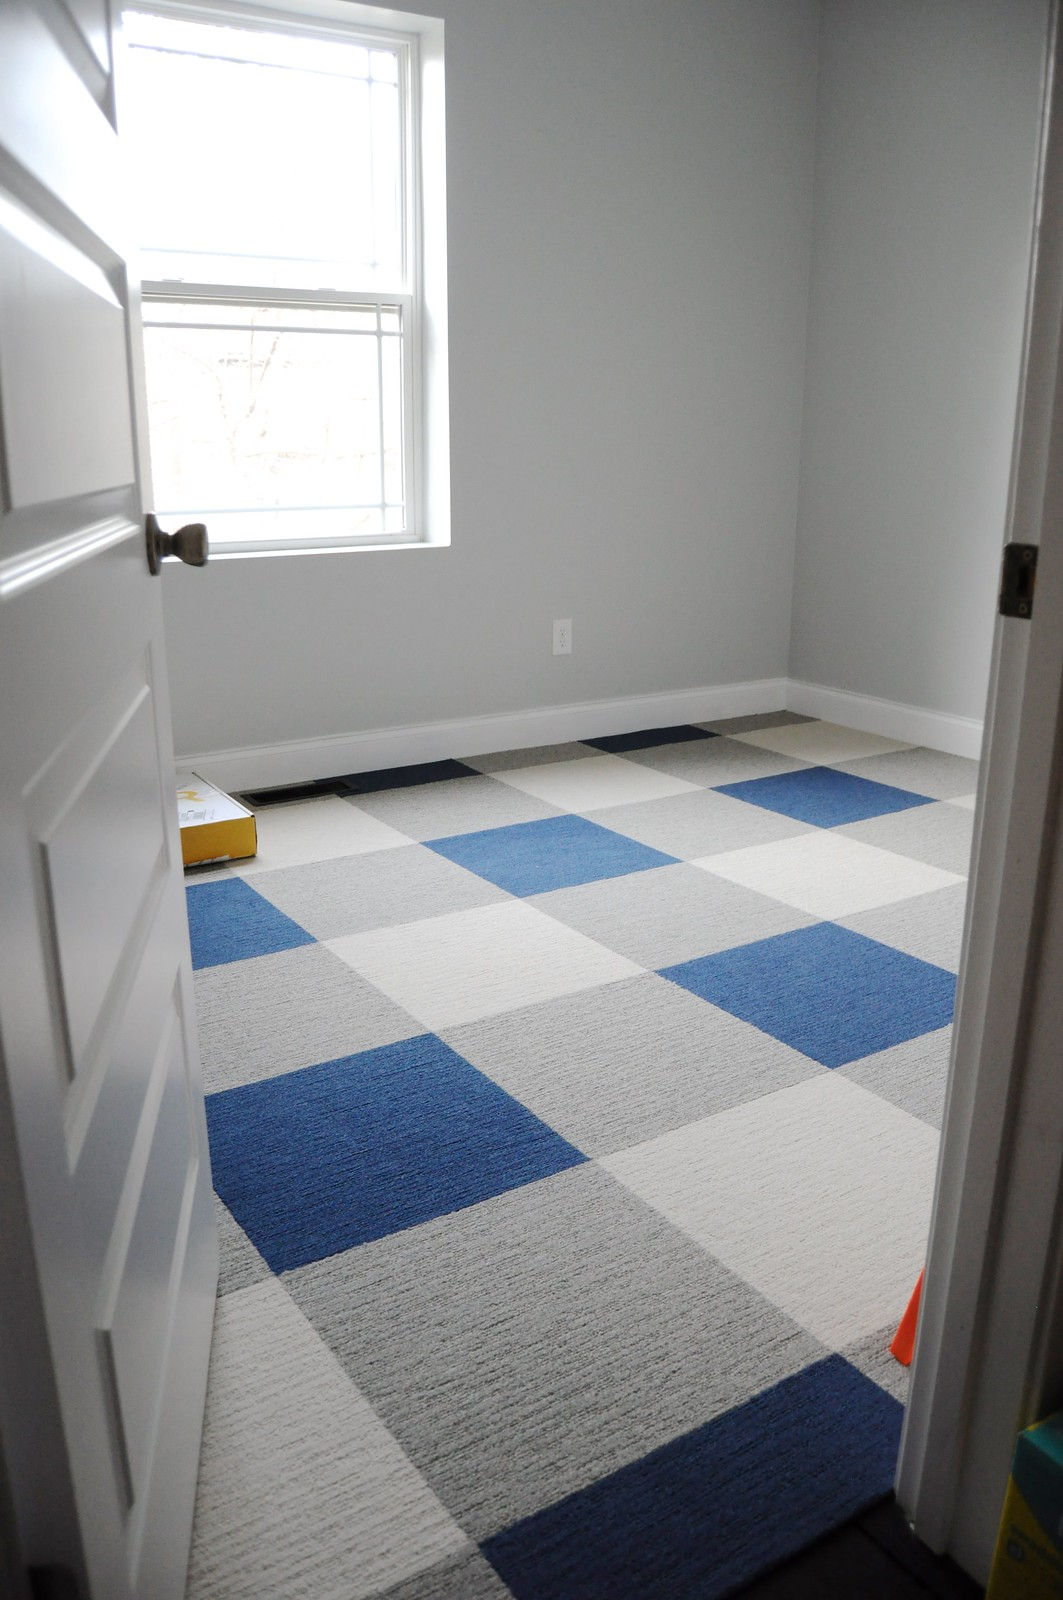 Buffalo Plaid Carpet Tile Floor